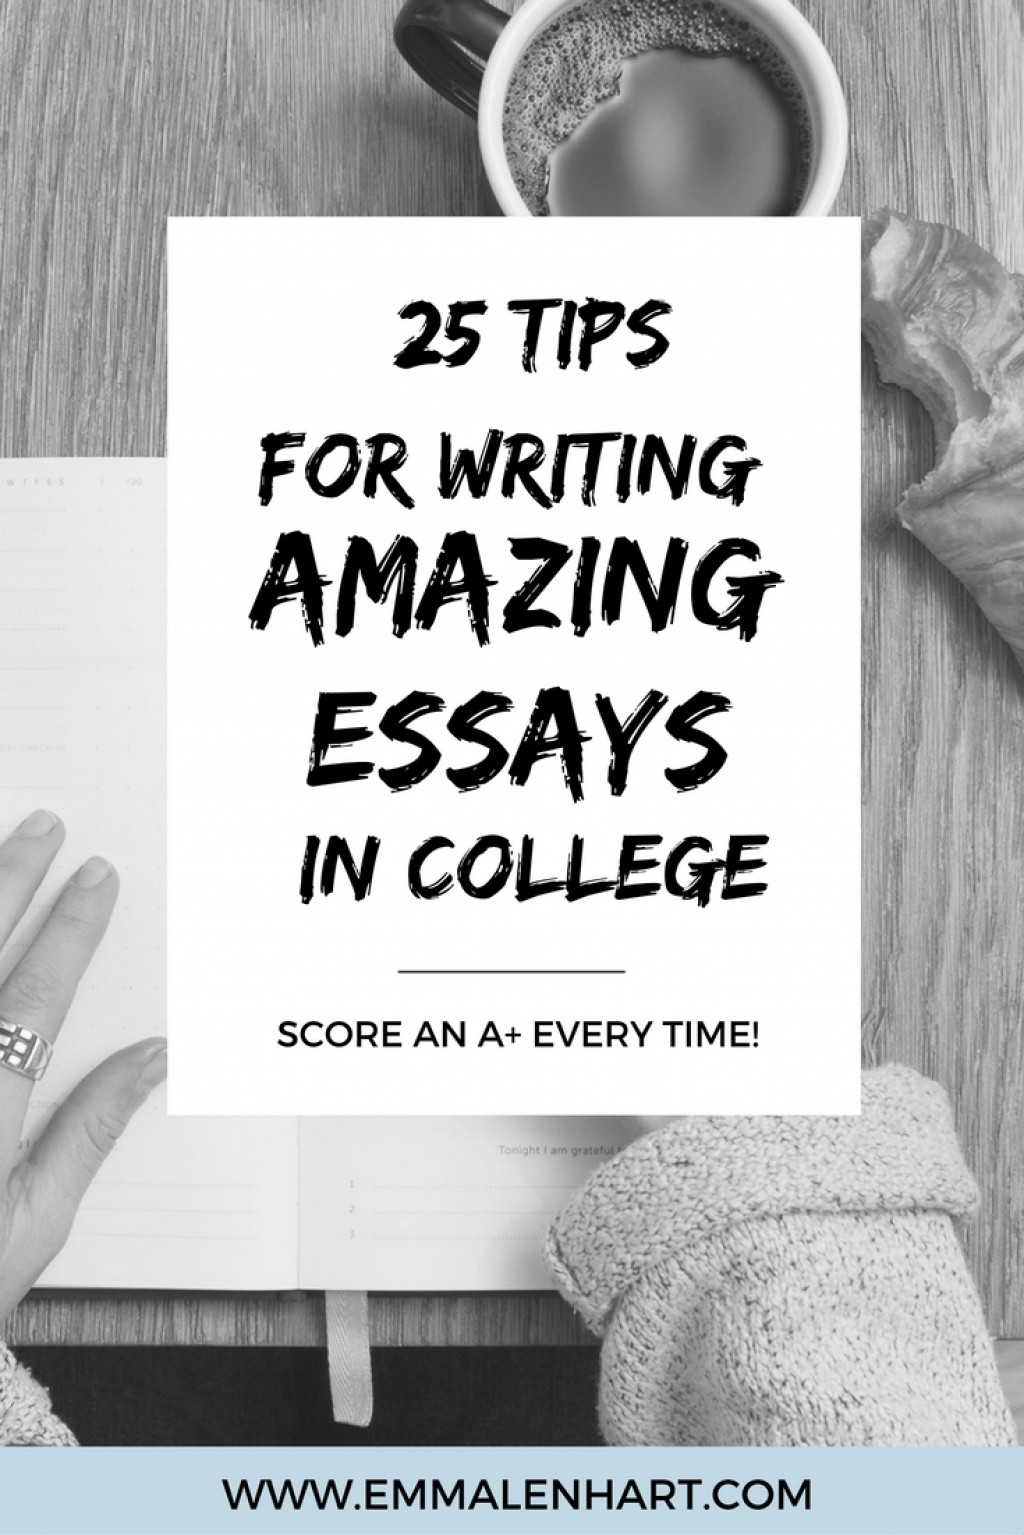 002 College Essay Writing Tips Example Imposing Video Application Large